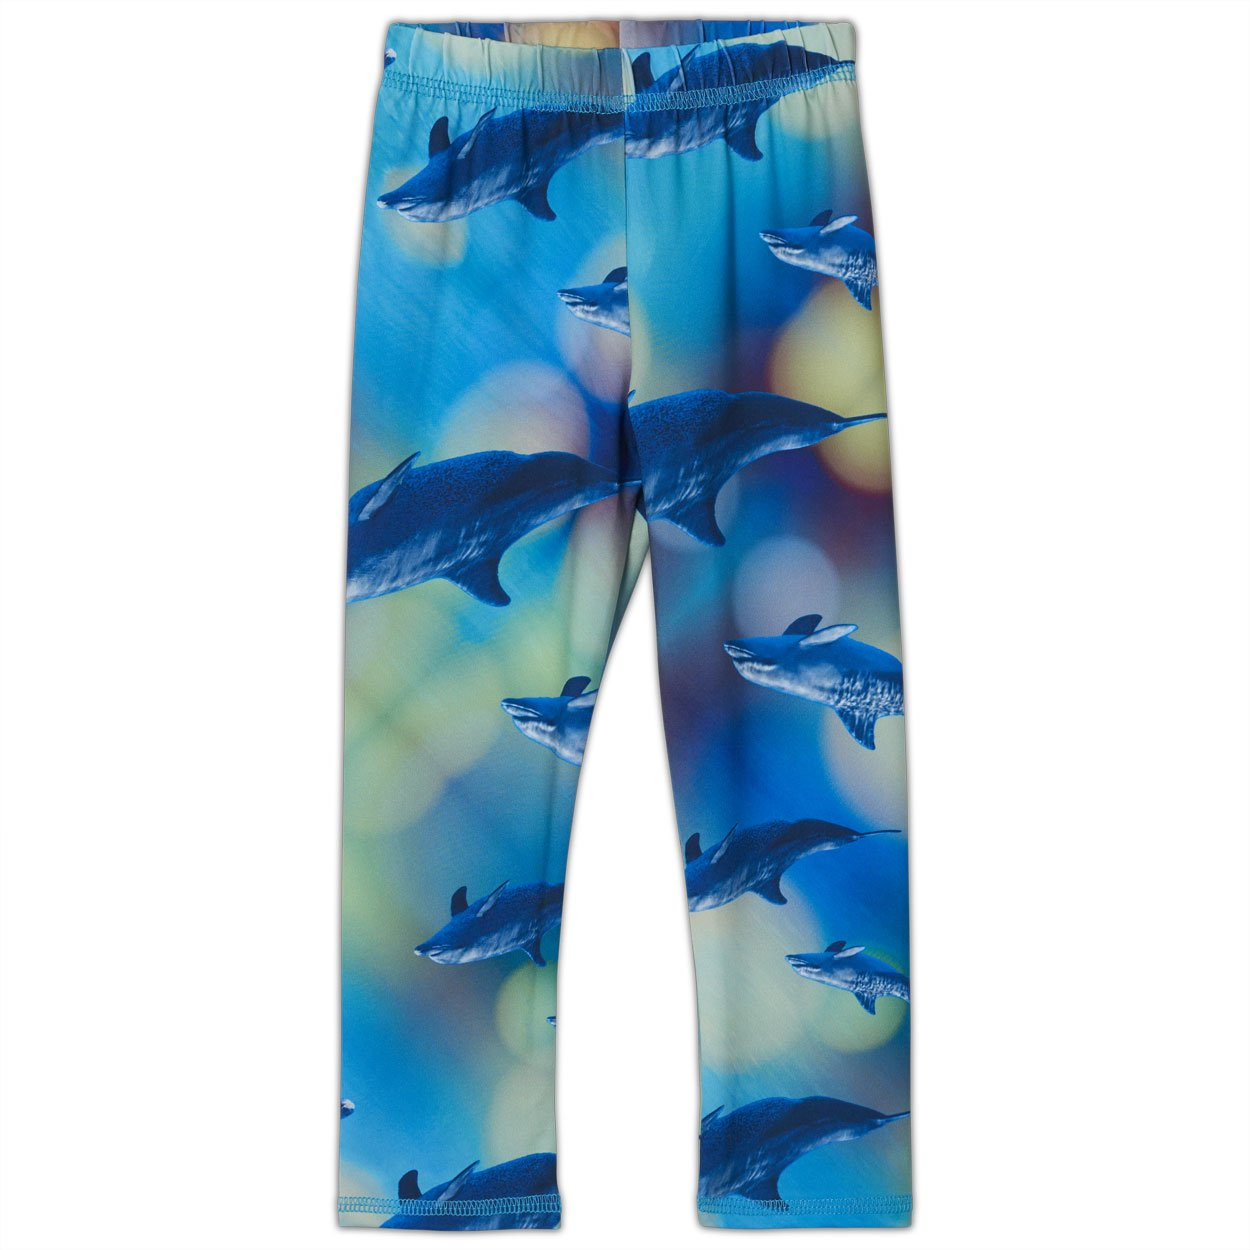 Blue Dolphin Hybrid Kids Leggings UPF 50+